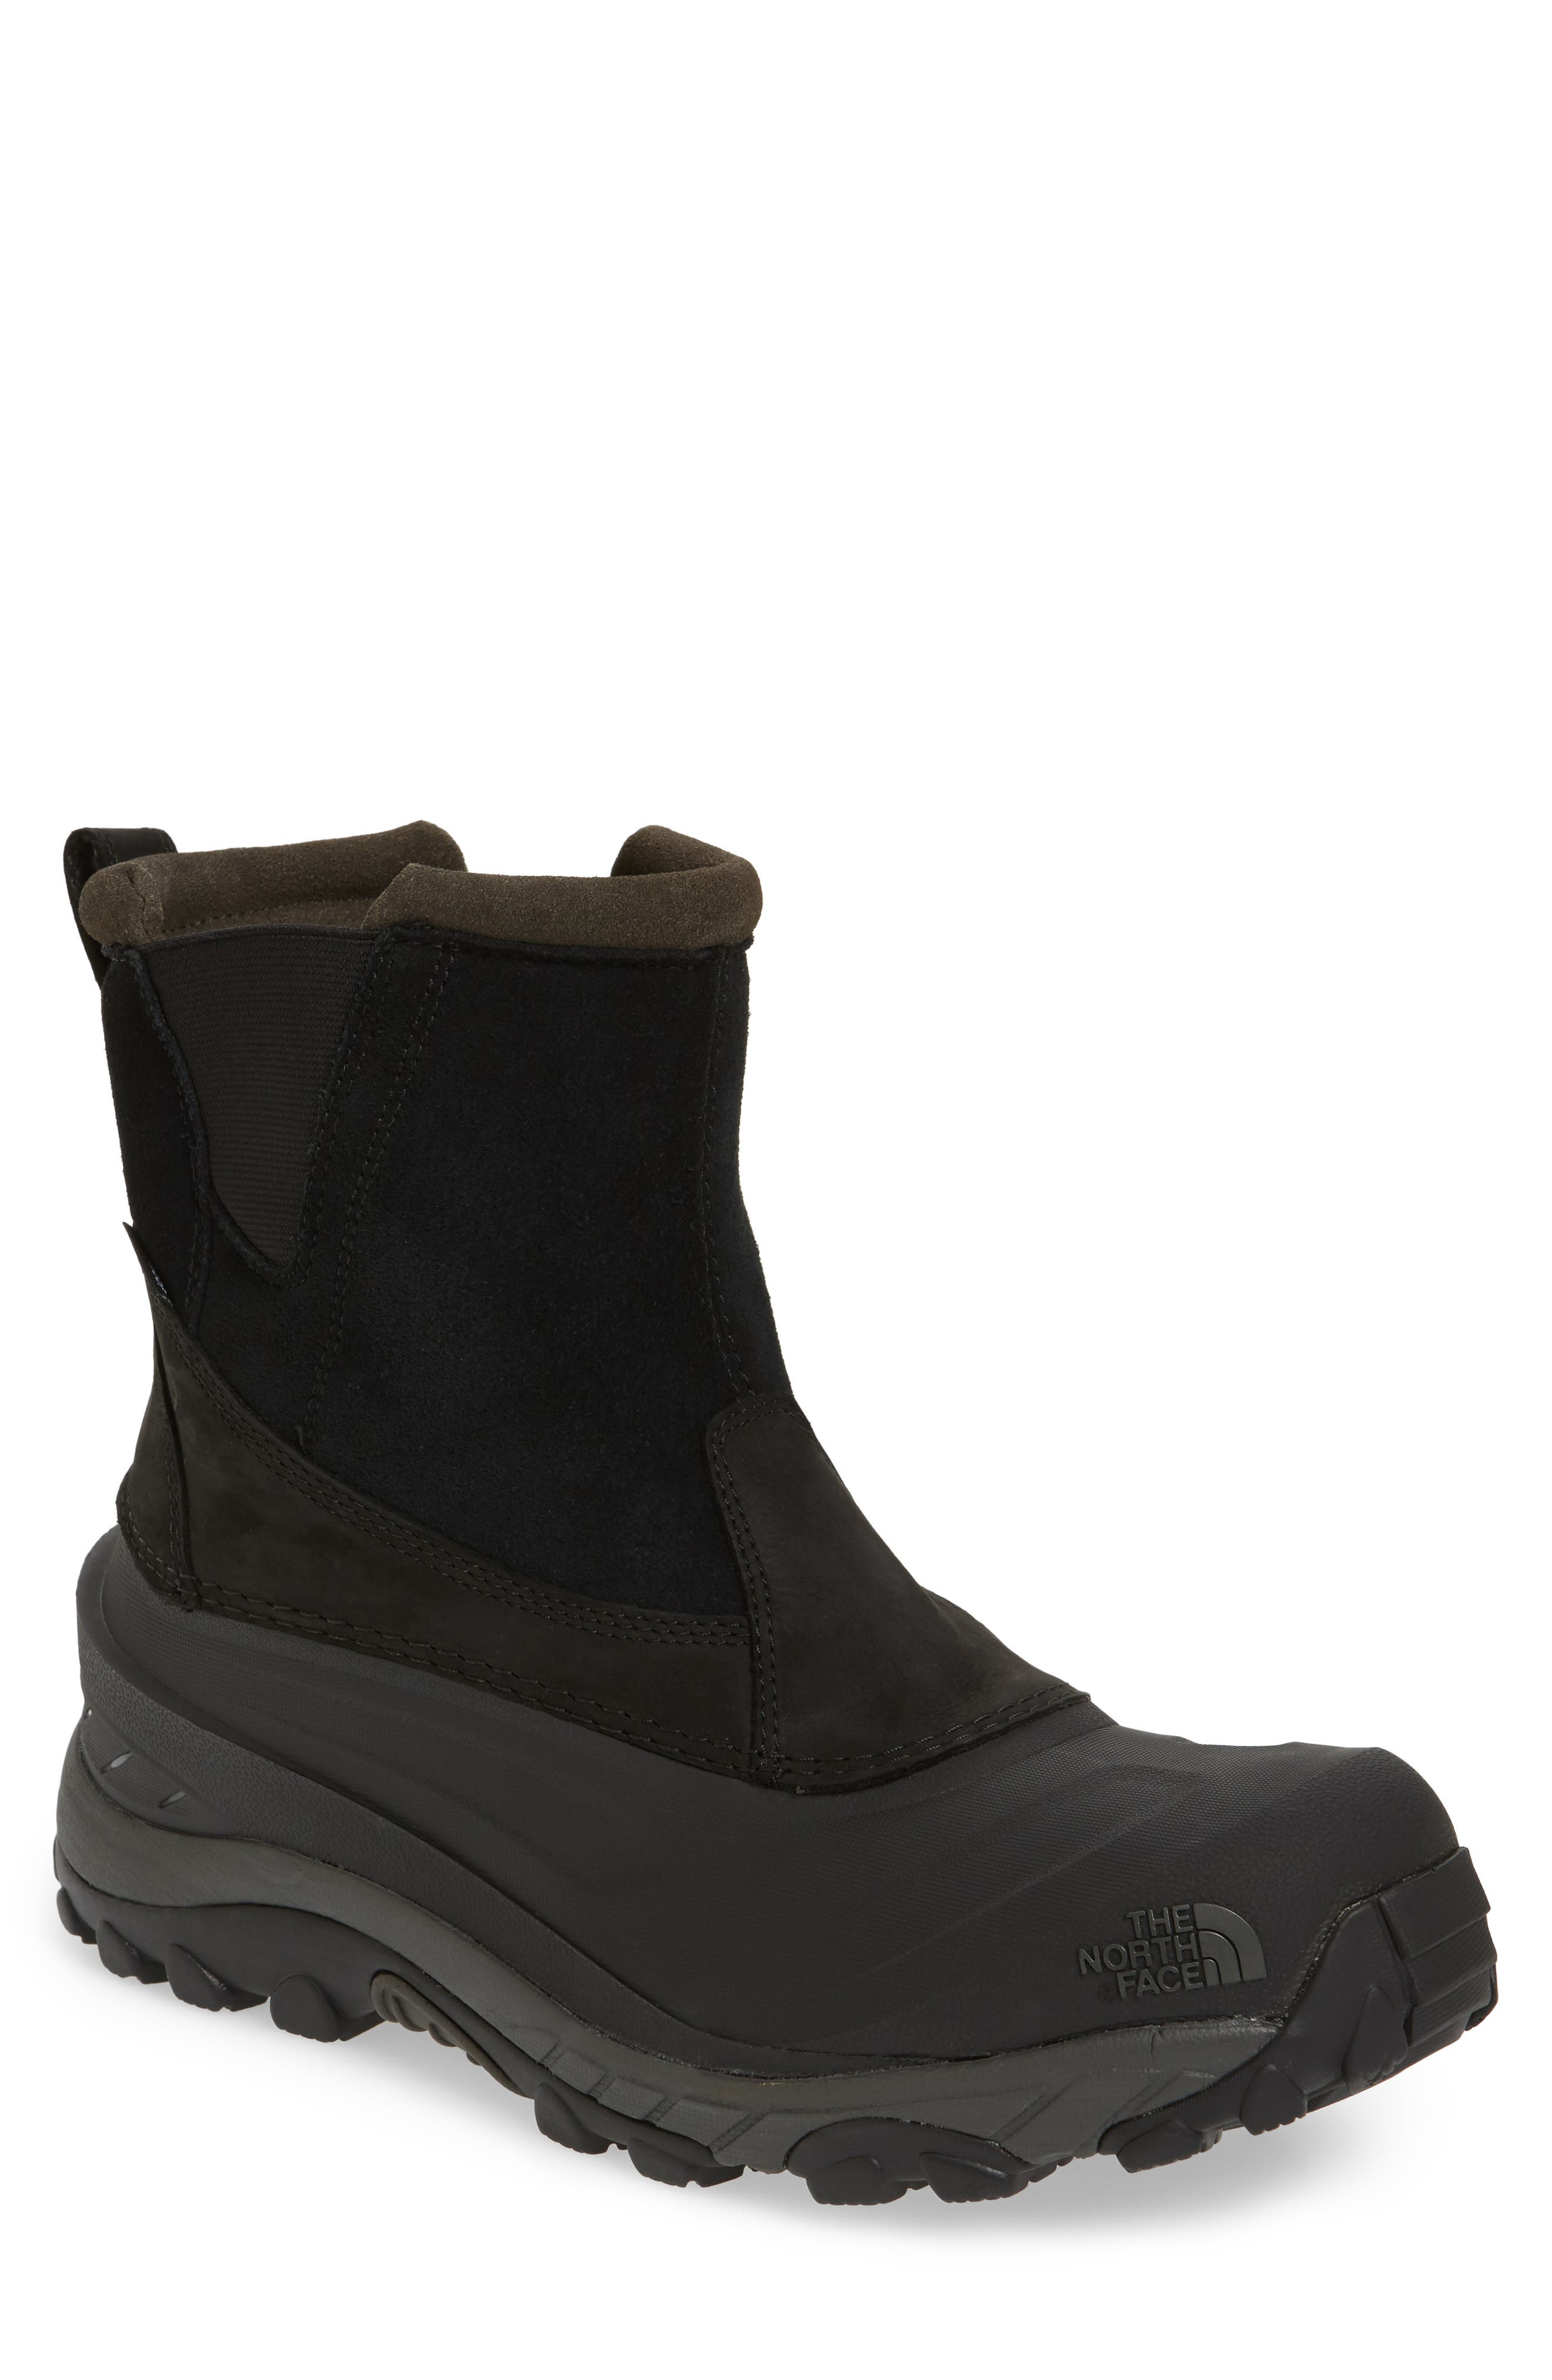 Chilkat III Waterproof Insulated Pull-On Boot,                             Main thumbnail 1, color,                             TNF BLACK